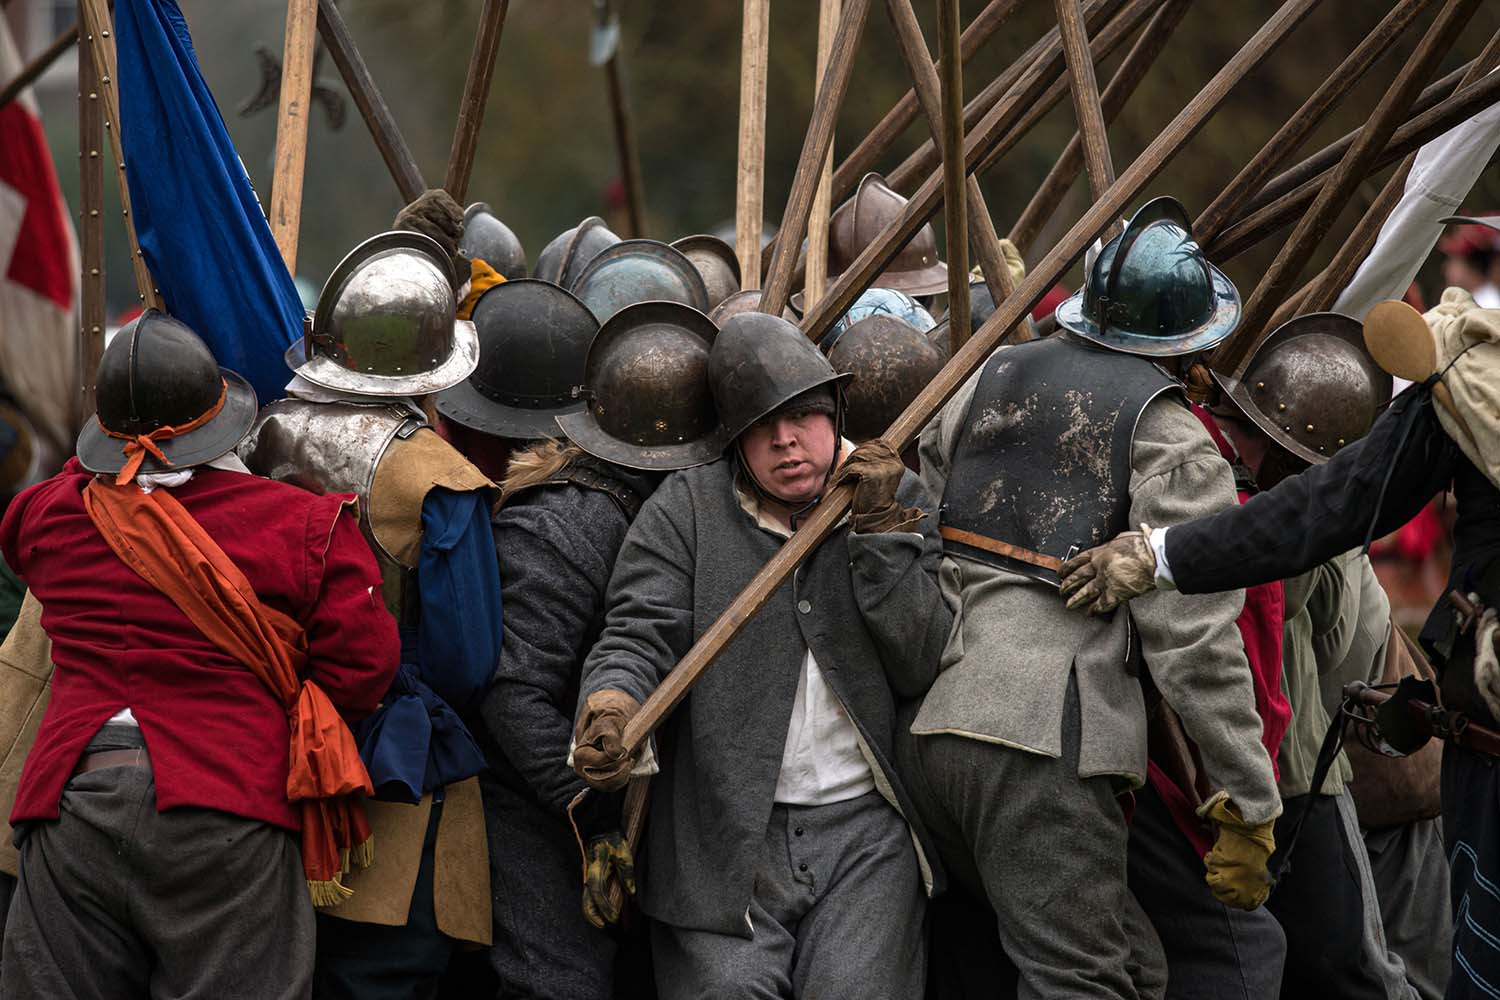 Members of the Sealed Knot, a society promoting interest in the English Civil War, stage a reenactment of the Battle of Nantwich, a battle which took place near the town in 1644, in northwest England on Jan. 25. OLI SCARFF/AFP via Getty Images